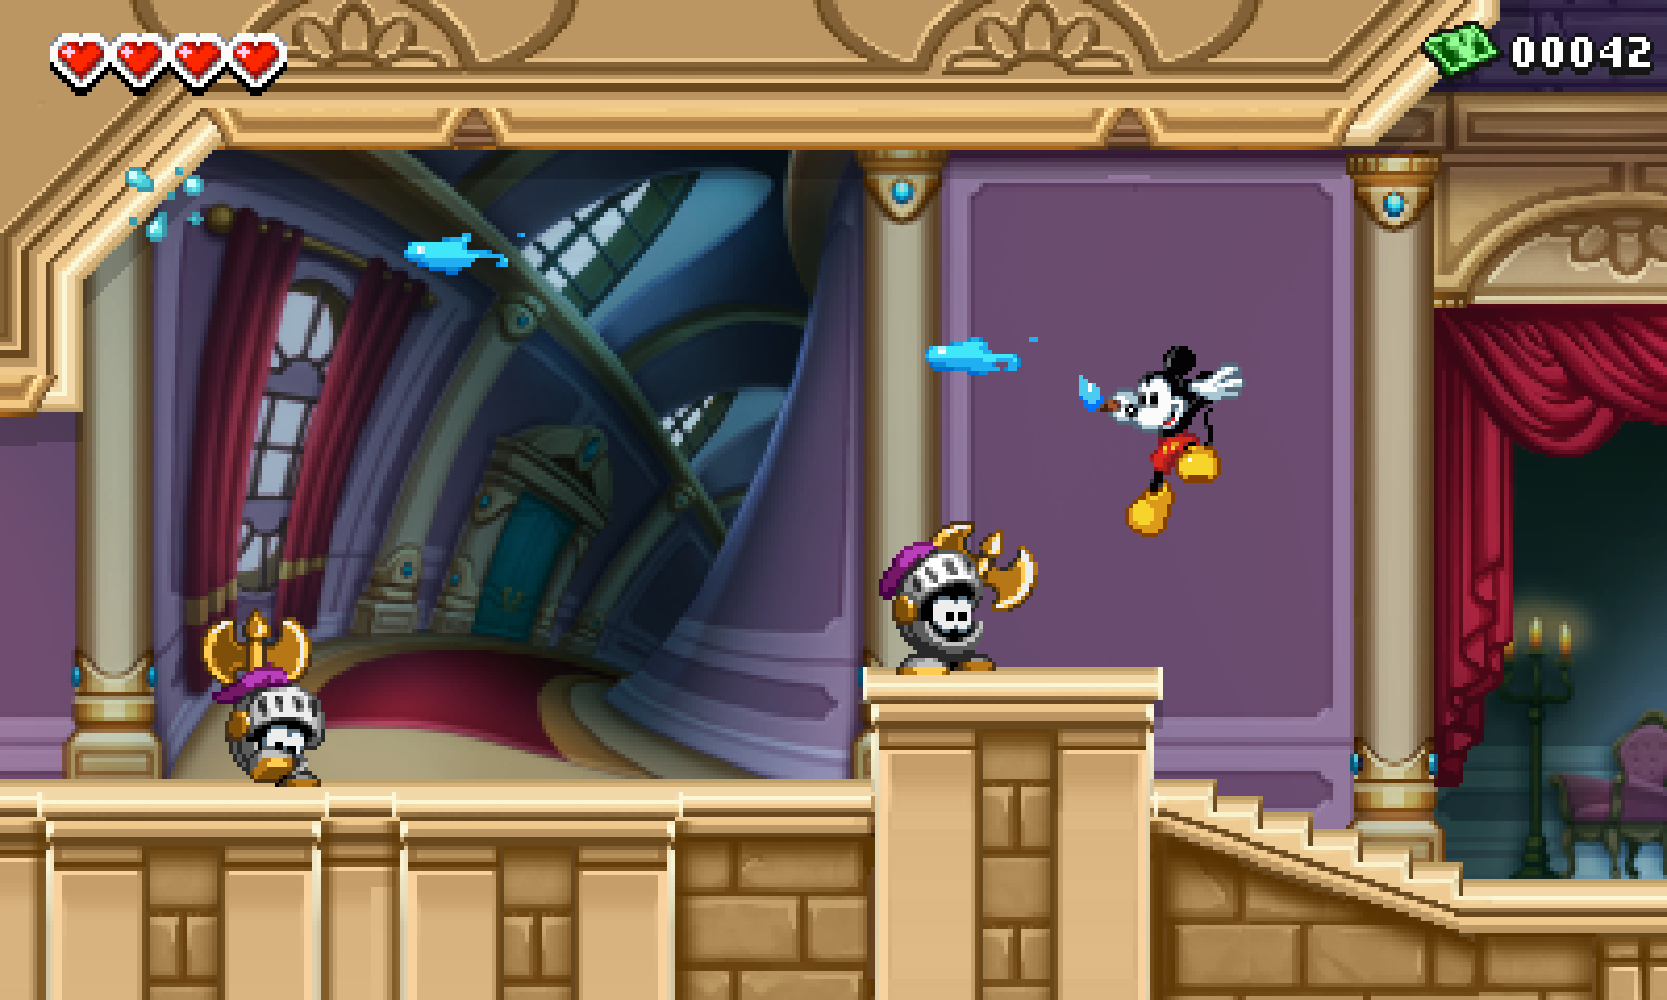 Epic Mickey: Power of Illusion Gives Nintendo 3DS A New Coat of Paint